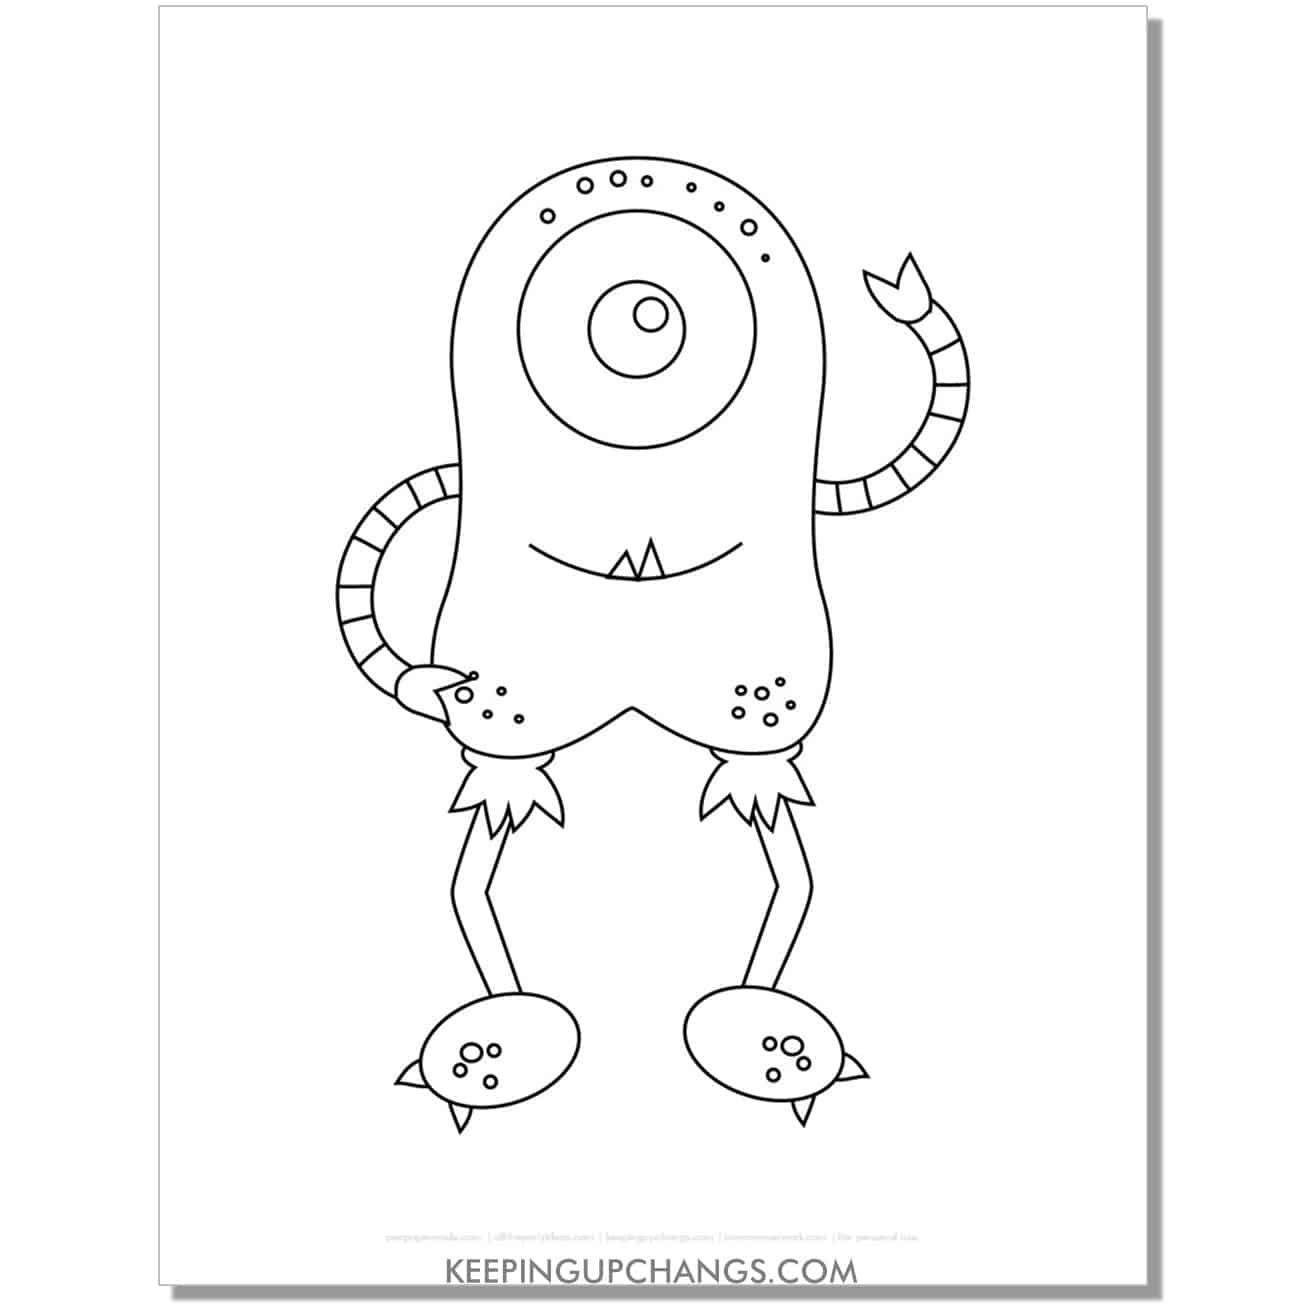 free tall round monster with long legs and arms coloring page.